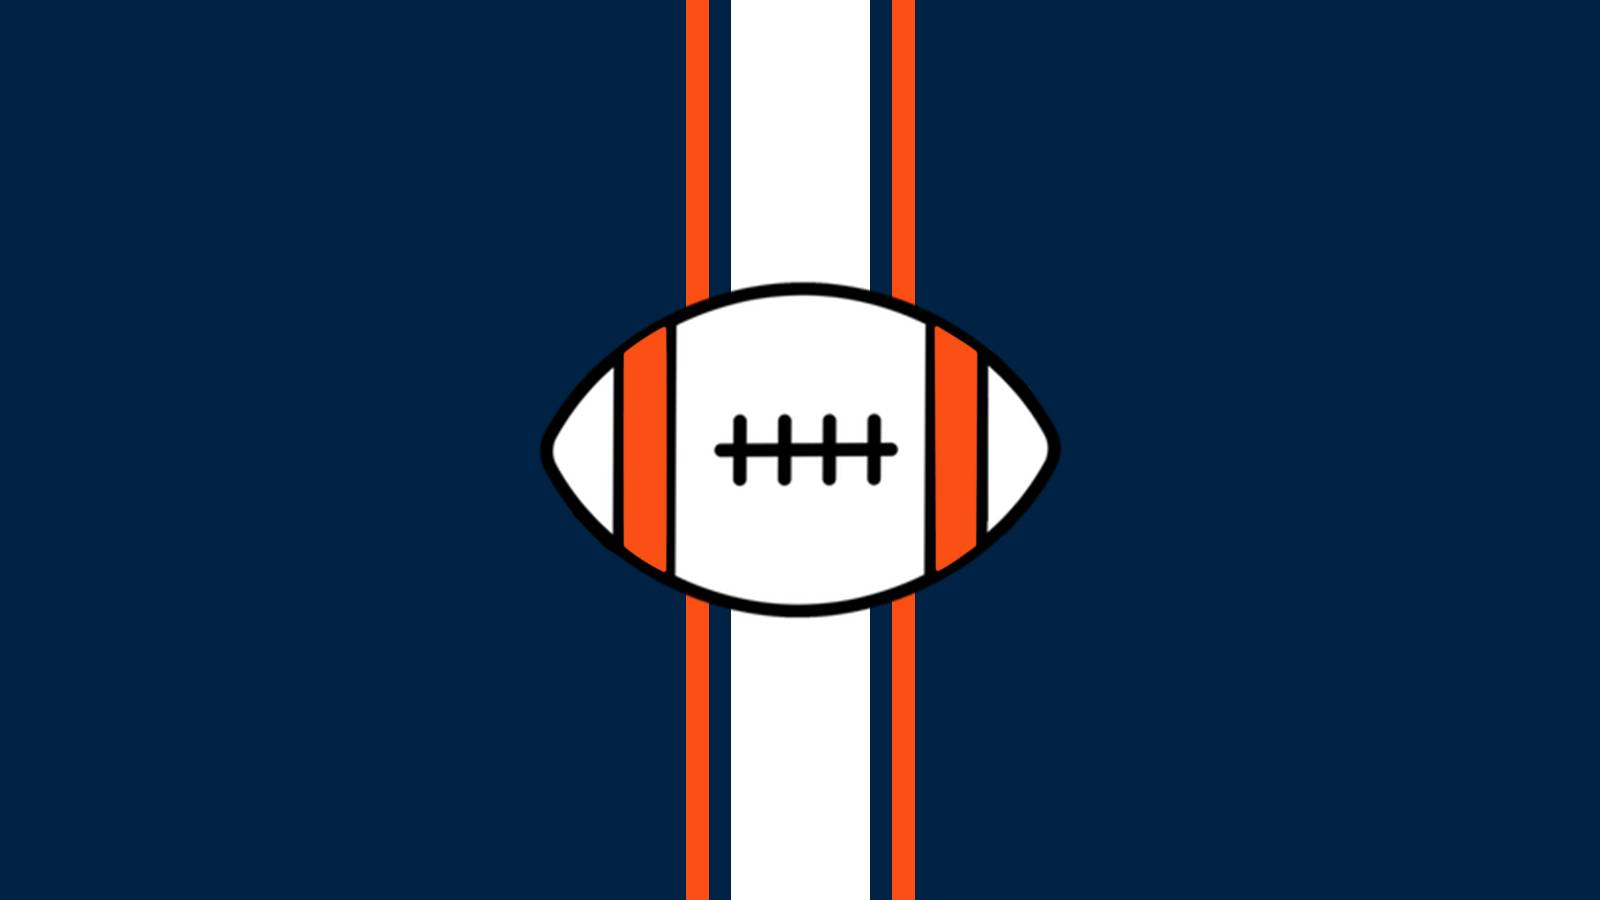 Tennessee Titans at Denver Broncos (Monday Night Football)